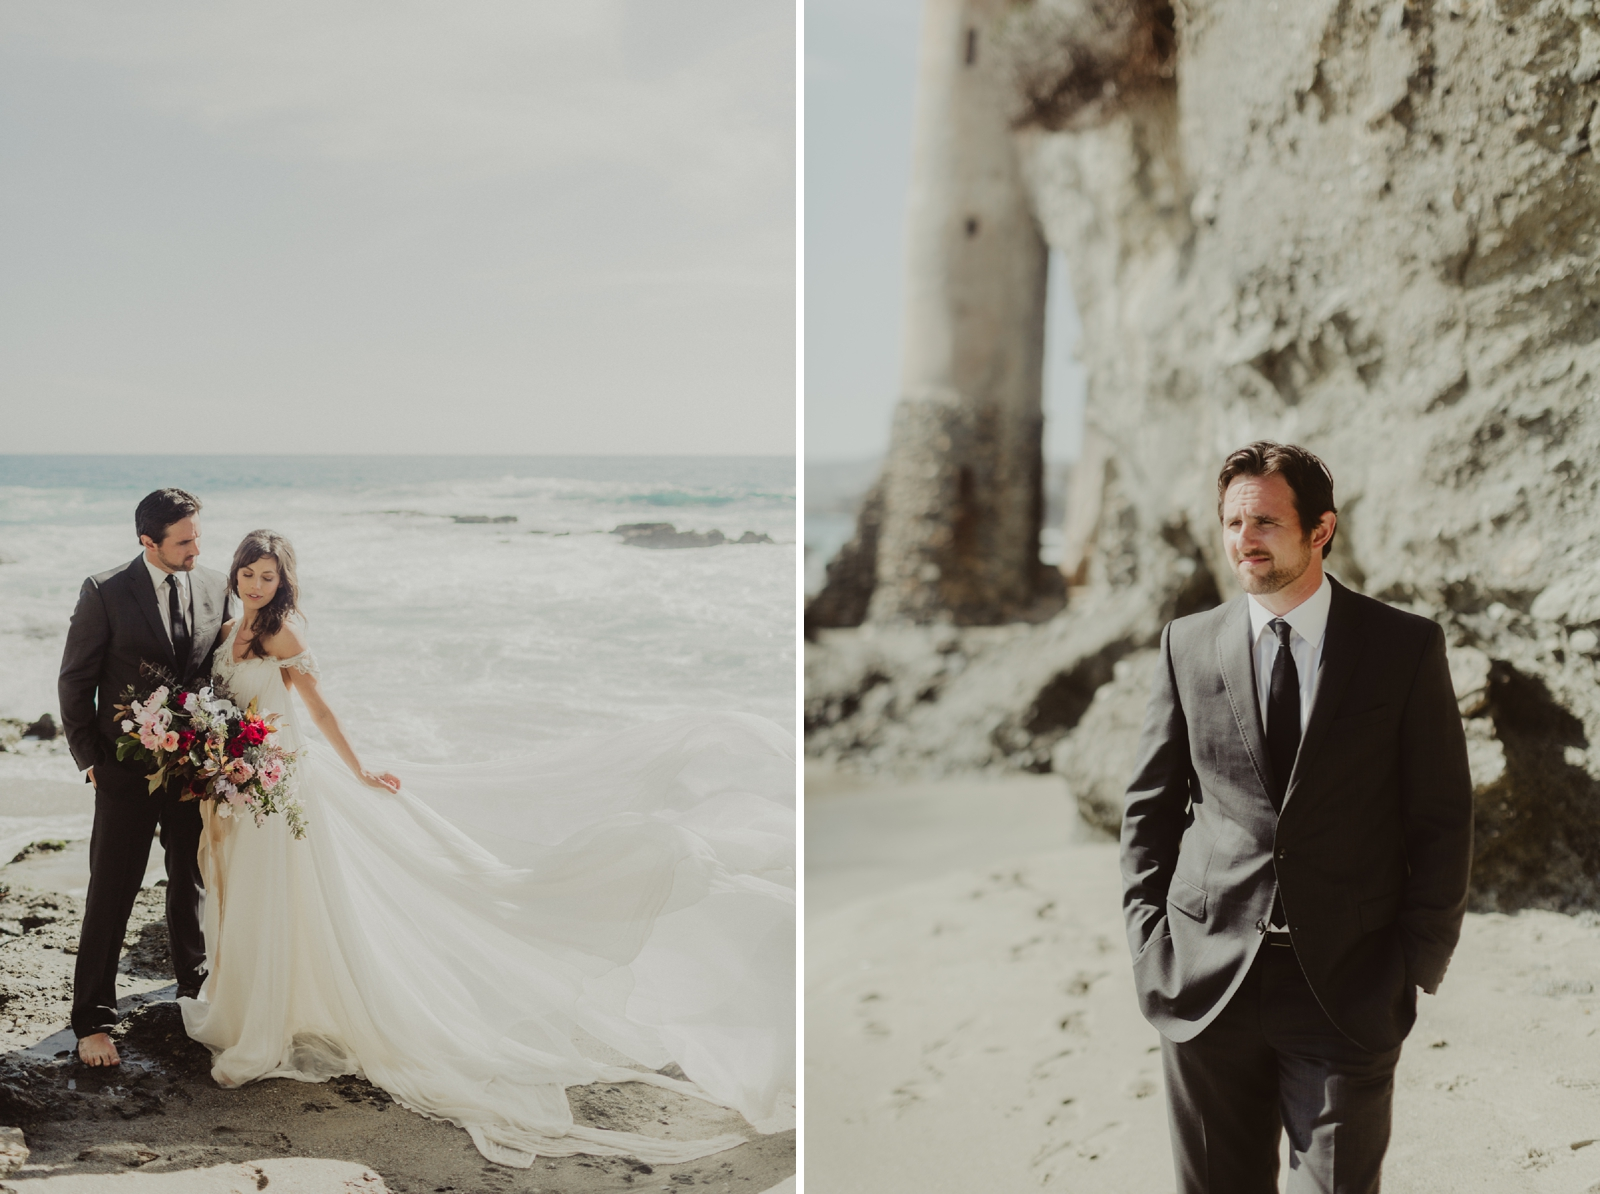 Kevin+Angie-Married-Blog-00016.jpg